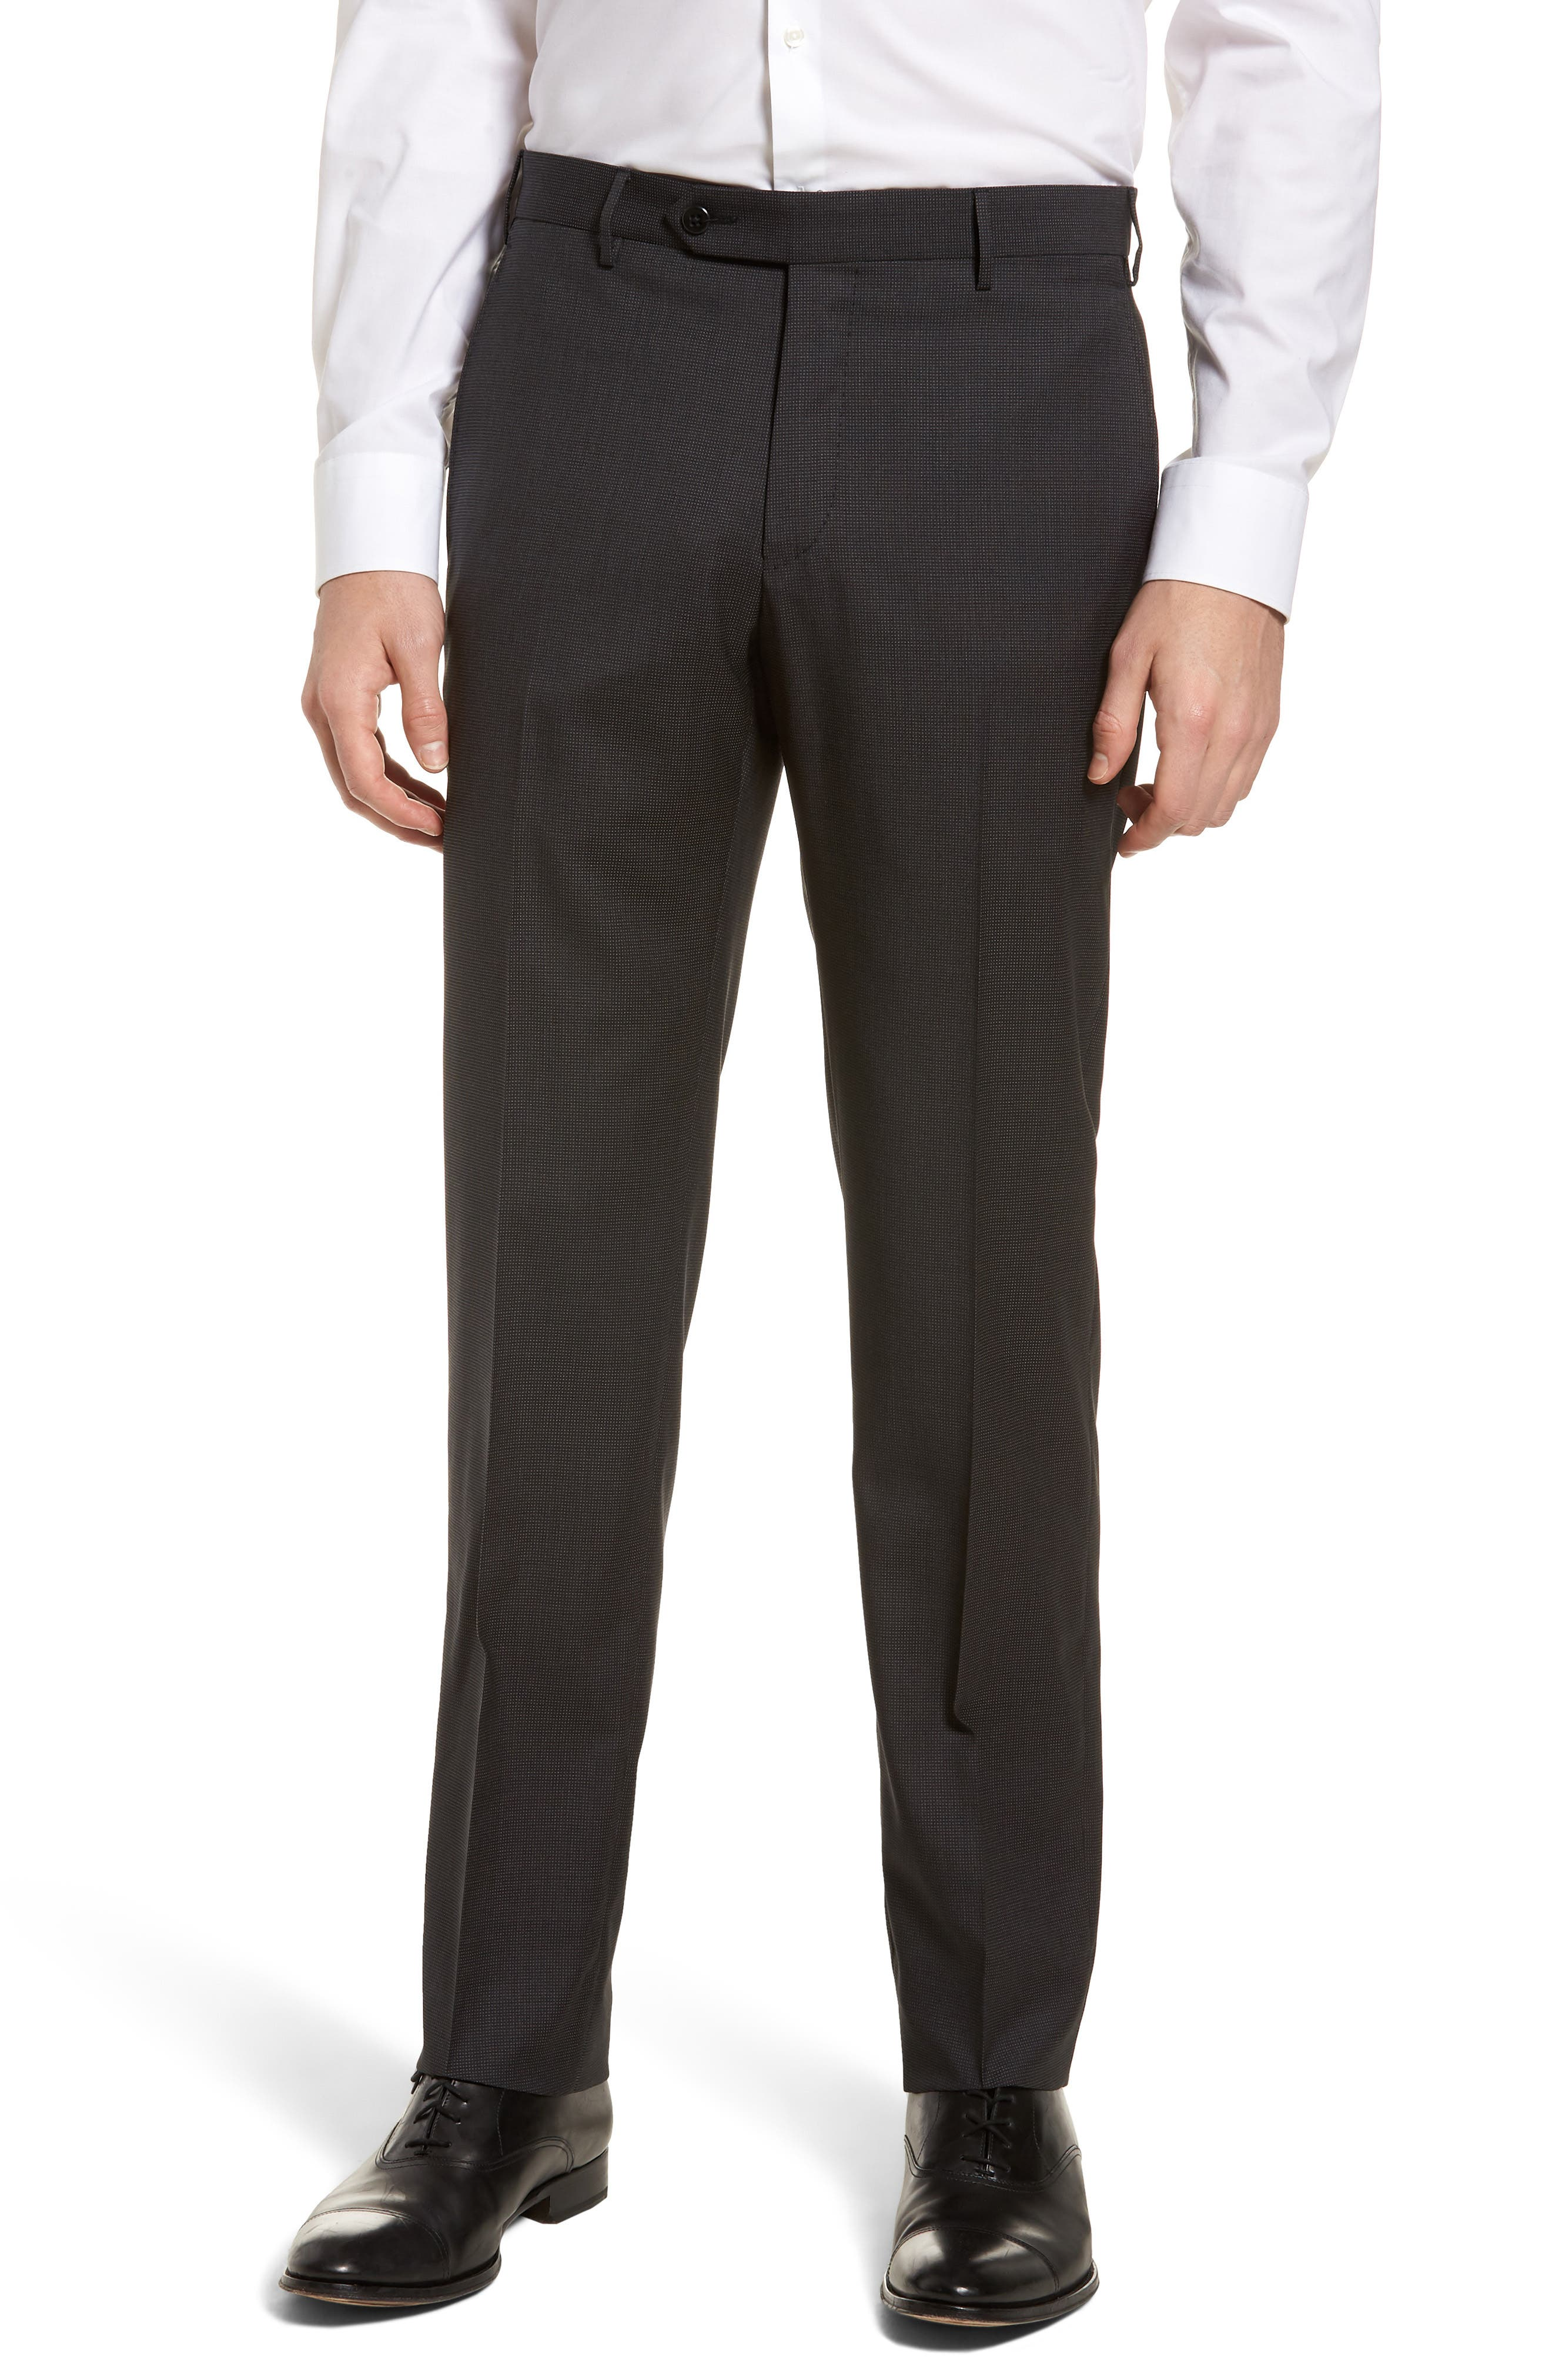 Parker Flat Front Pindot Wool Trousers,                             Main thumbnail 1, color,                             020